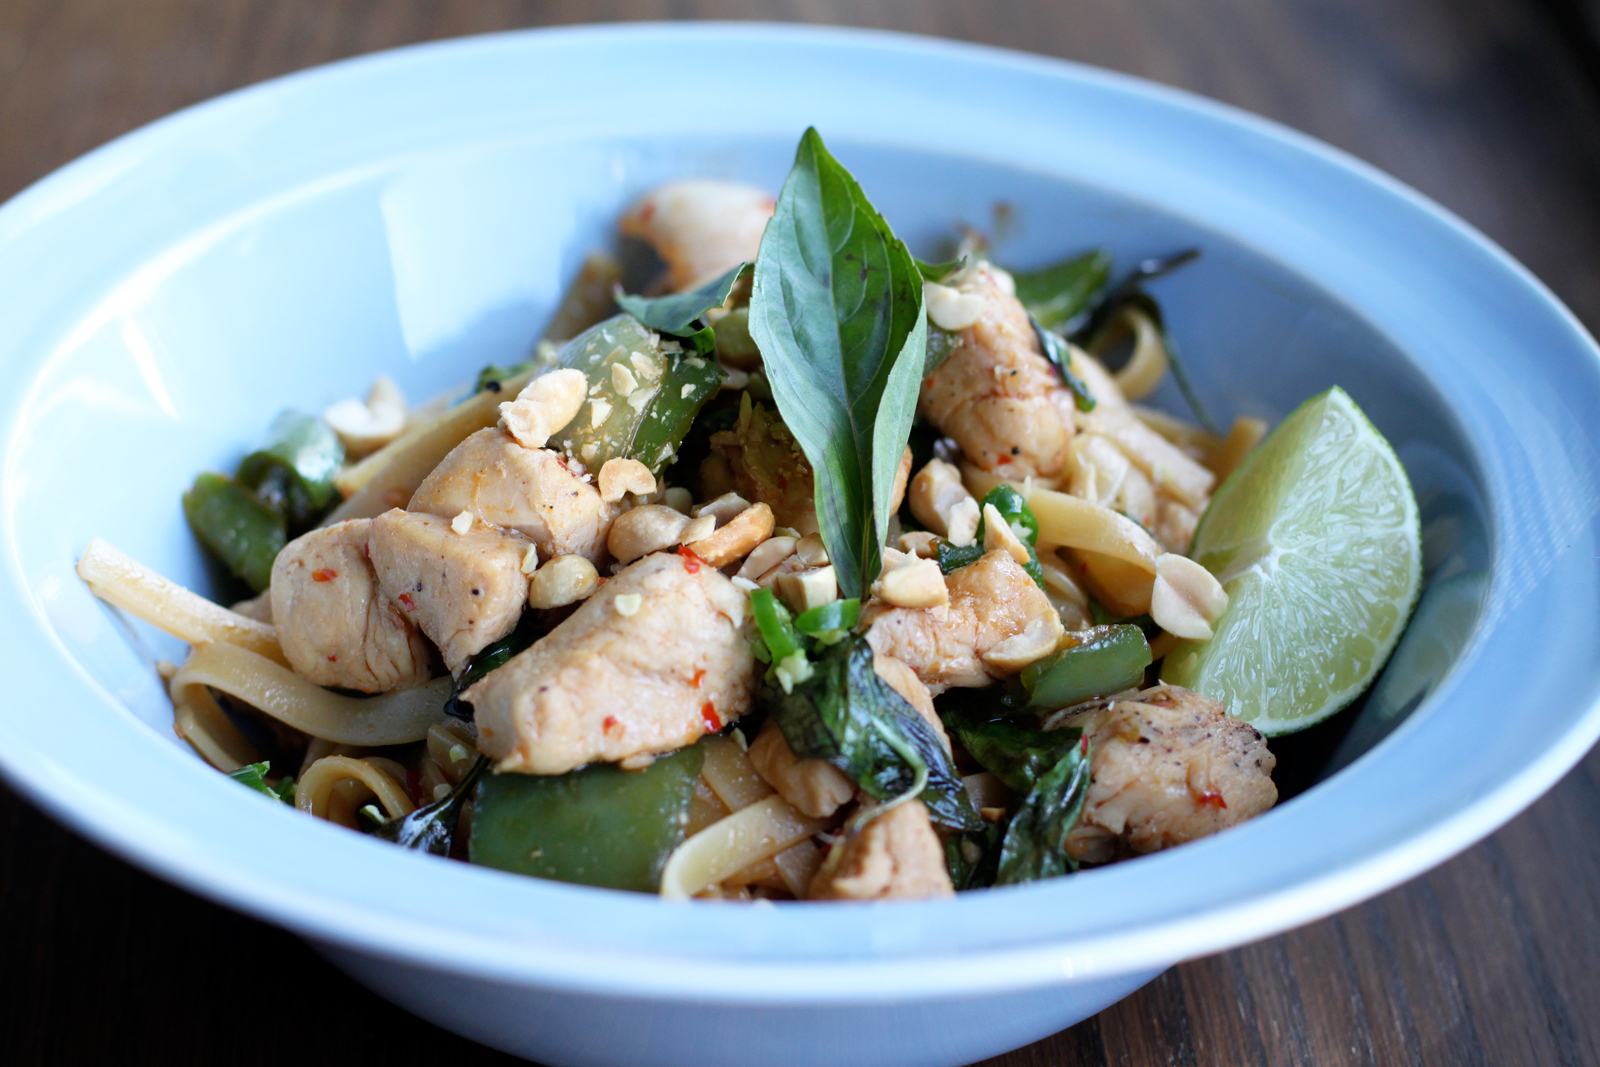 thai drunken noodles is basically a noodle dish that incorporates